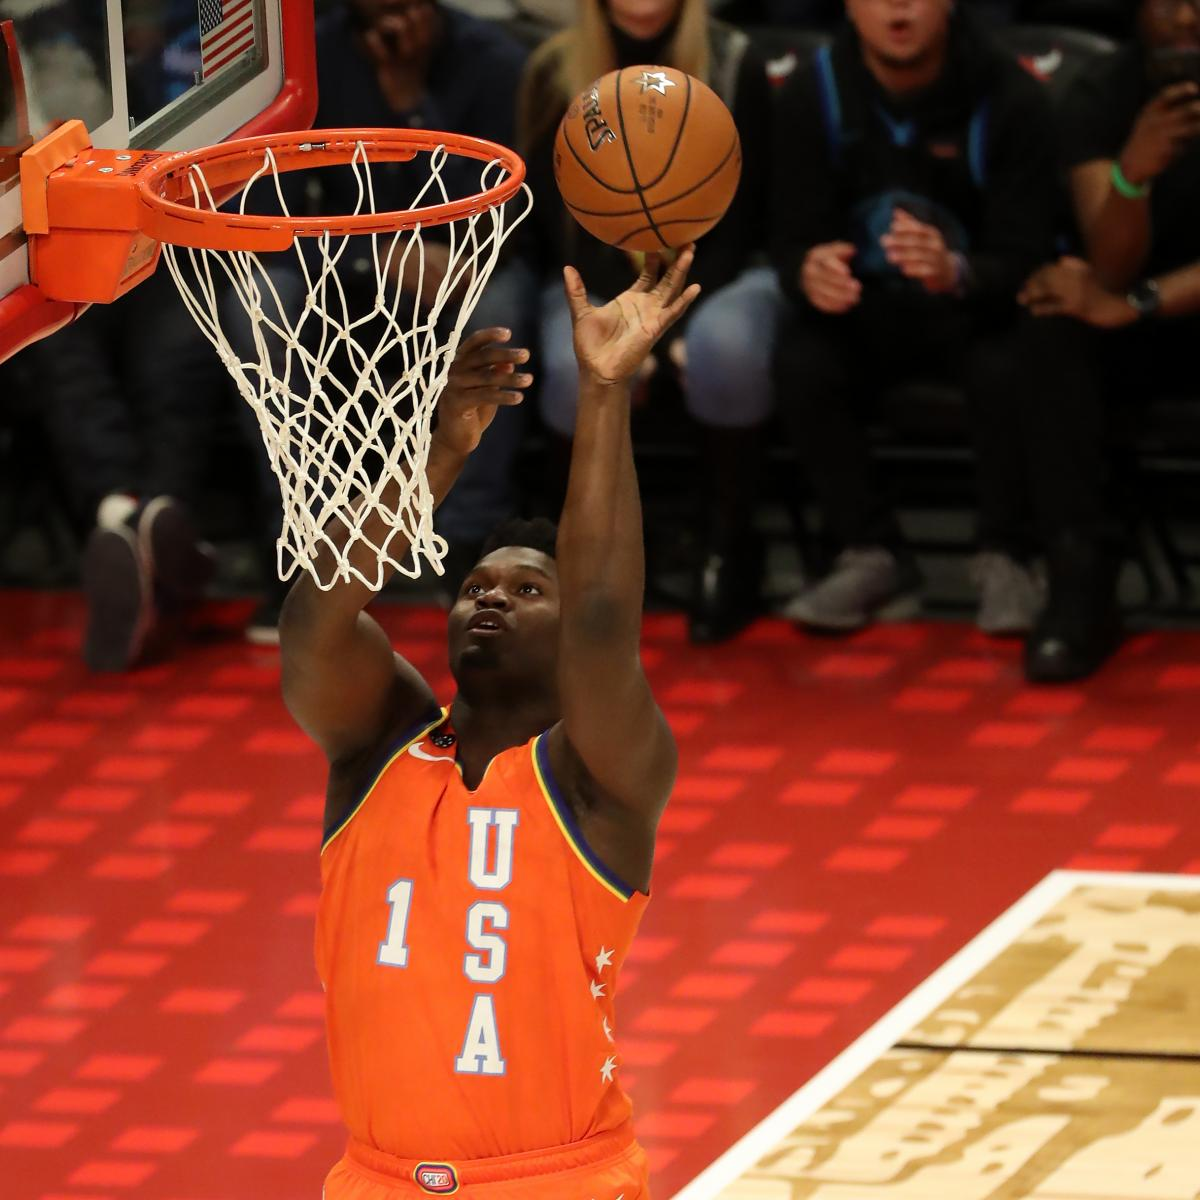 Video: Zion Williamson Tilts Backboard with Big Dunk in NBA Rising Stars Game